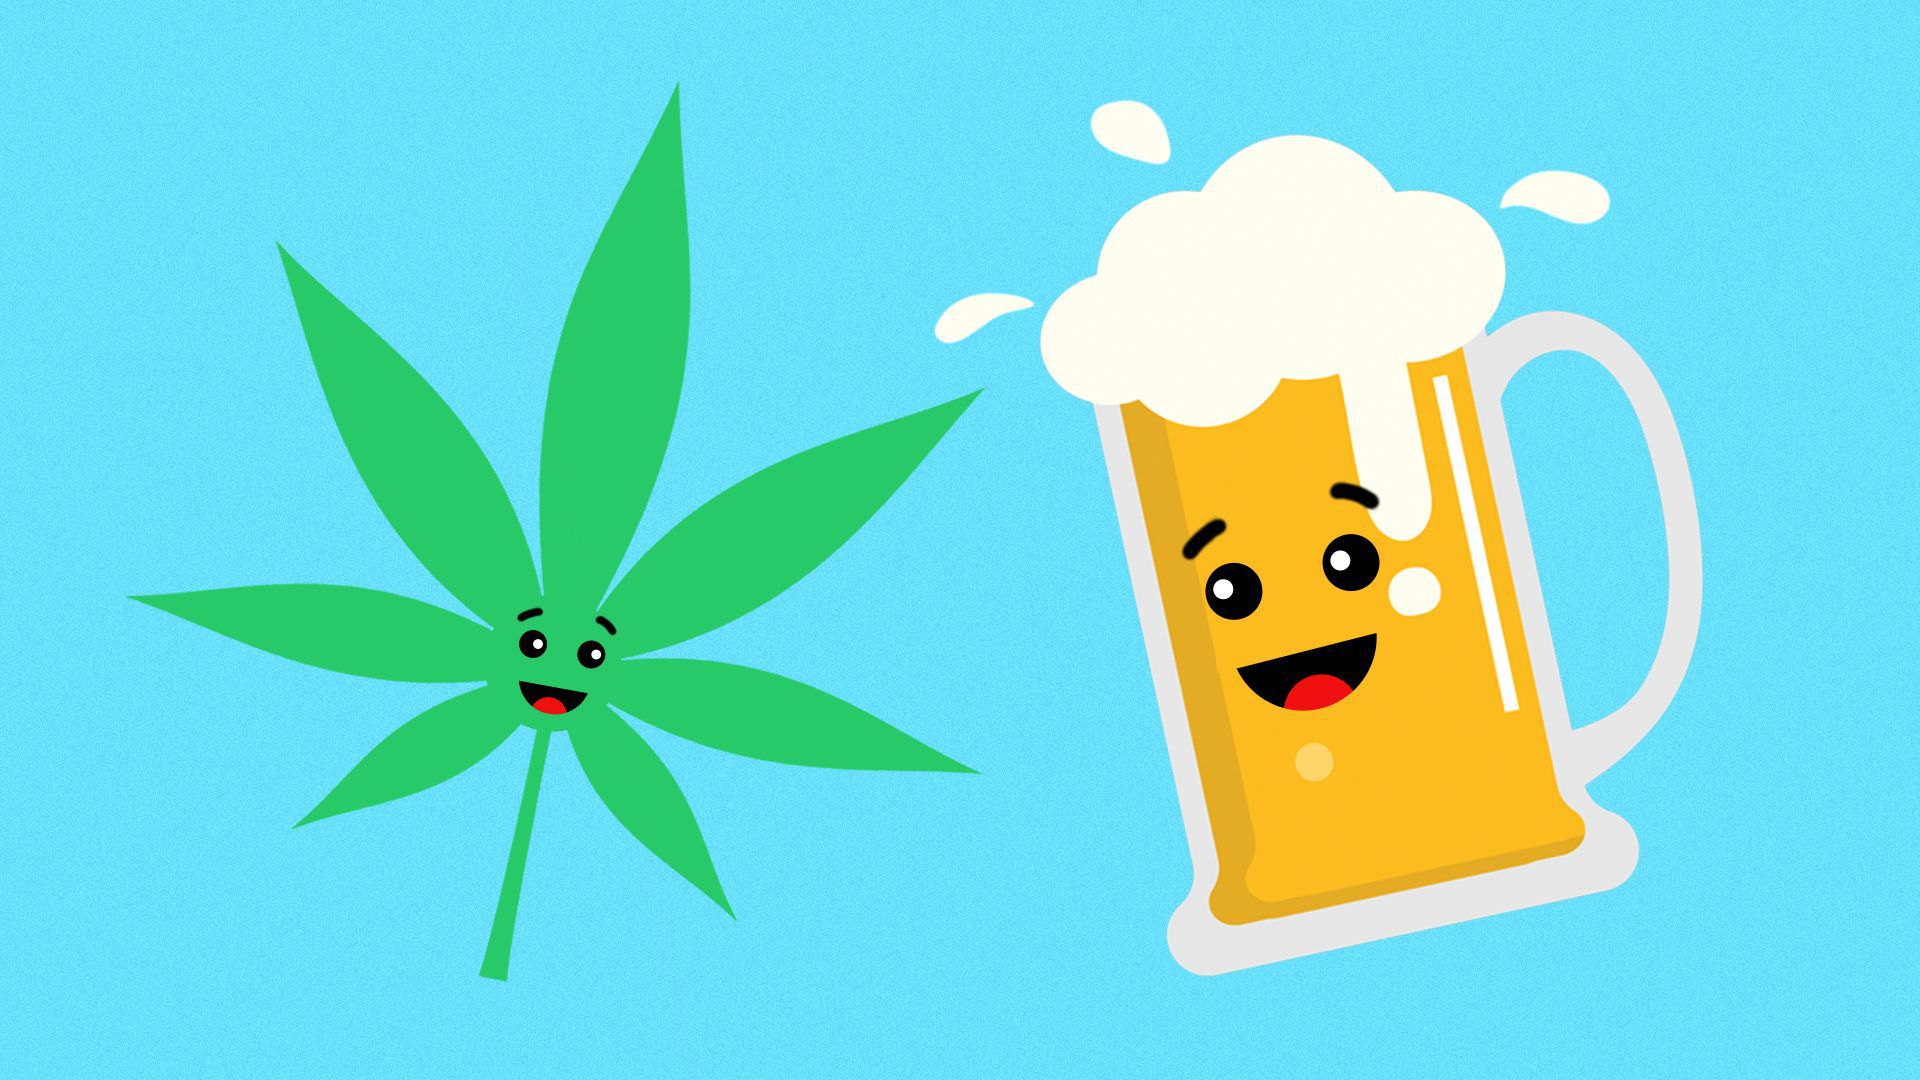 Illustration of cannabis and beer emoji smiling at each other.